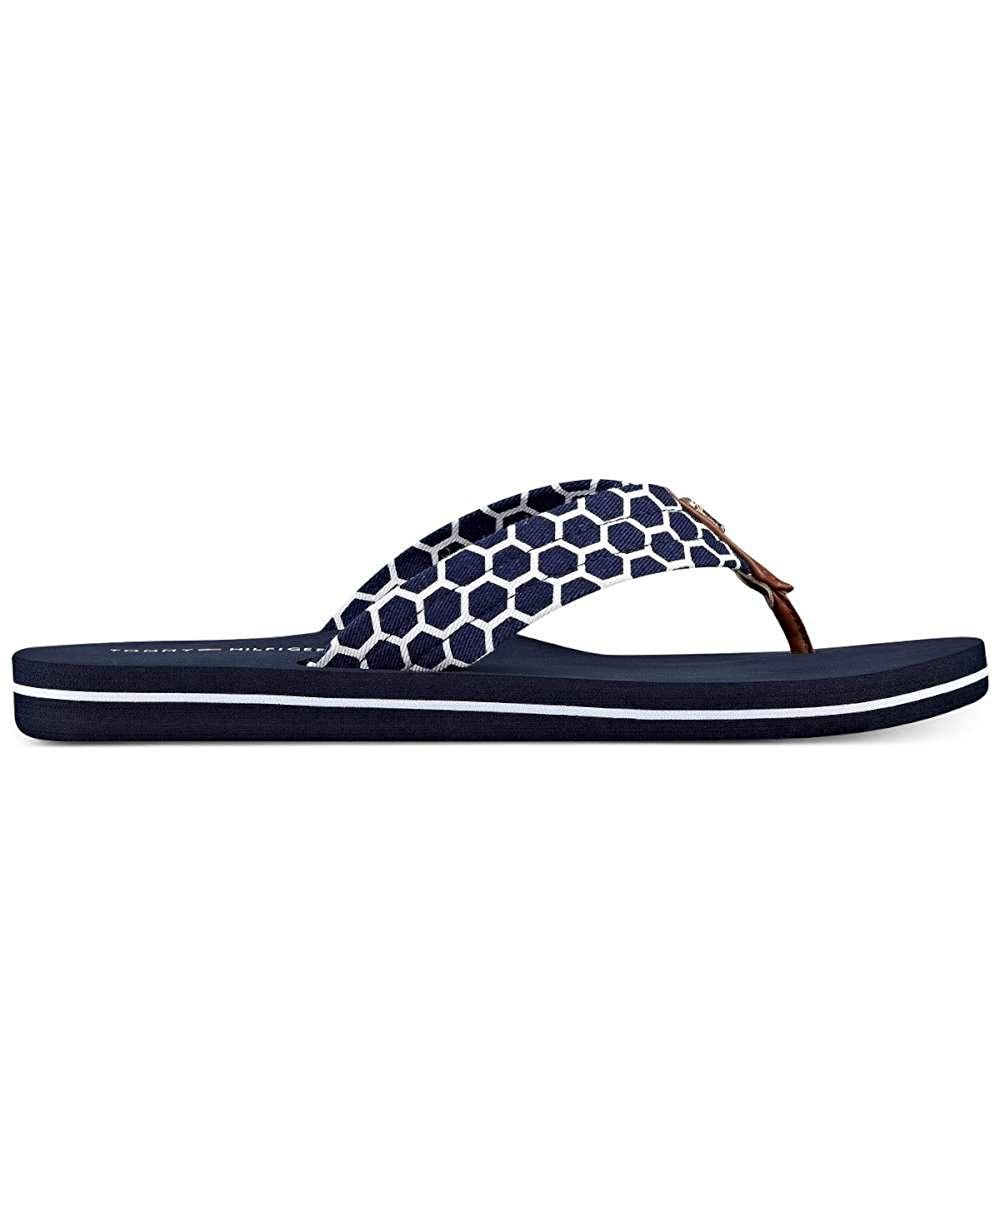 Tommy Hilfiger Womens Cargo Open Toe Casual Very Kind Of Your Presence To Have Dropped By To View Our Photo Womens Flip Flops Women Cargos Tommy Hilfiger